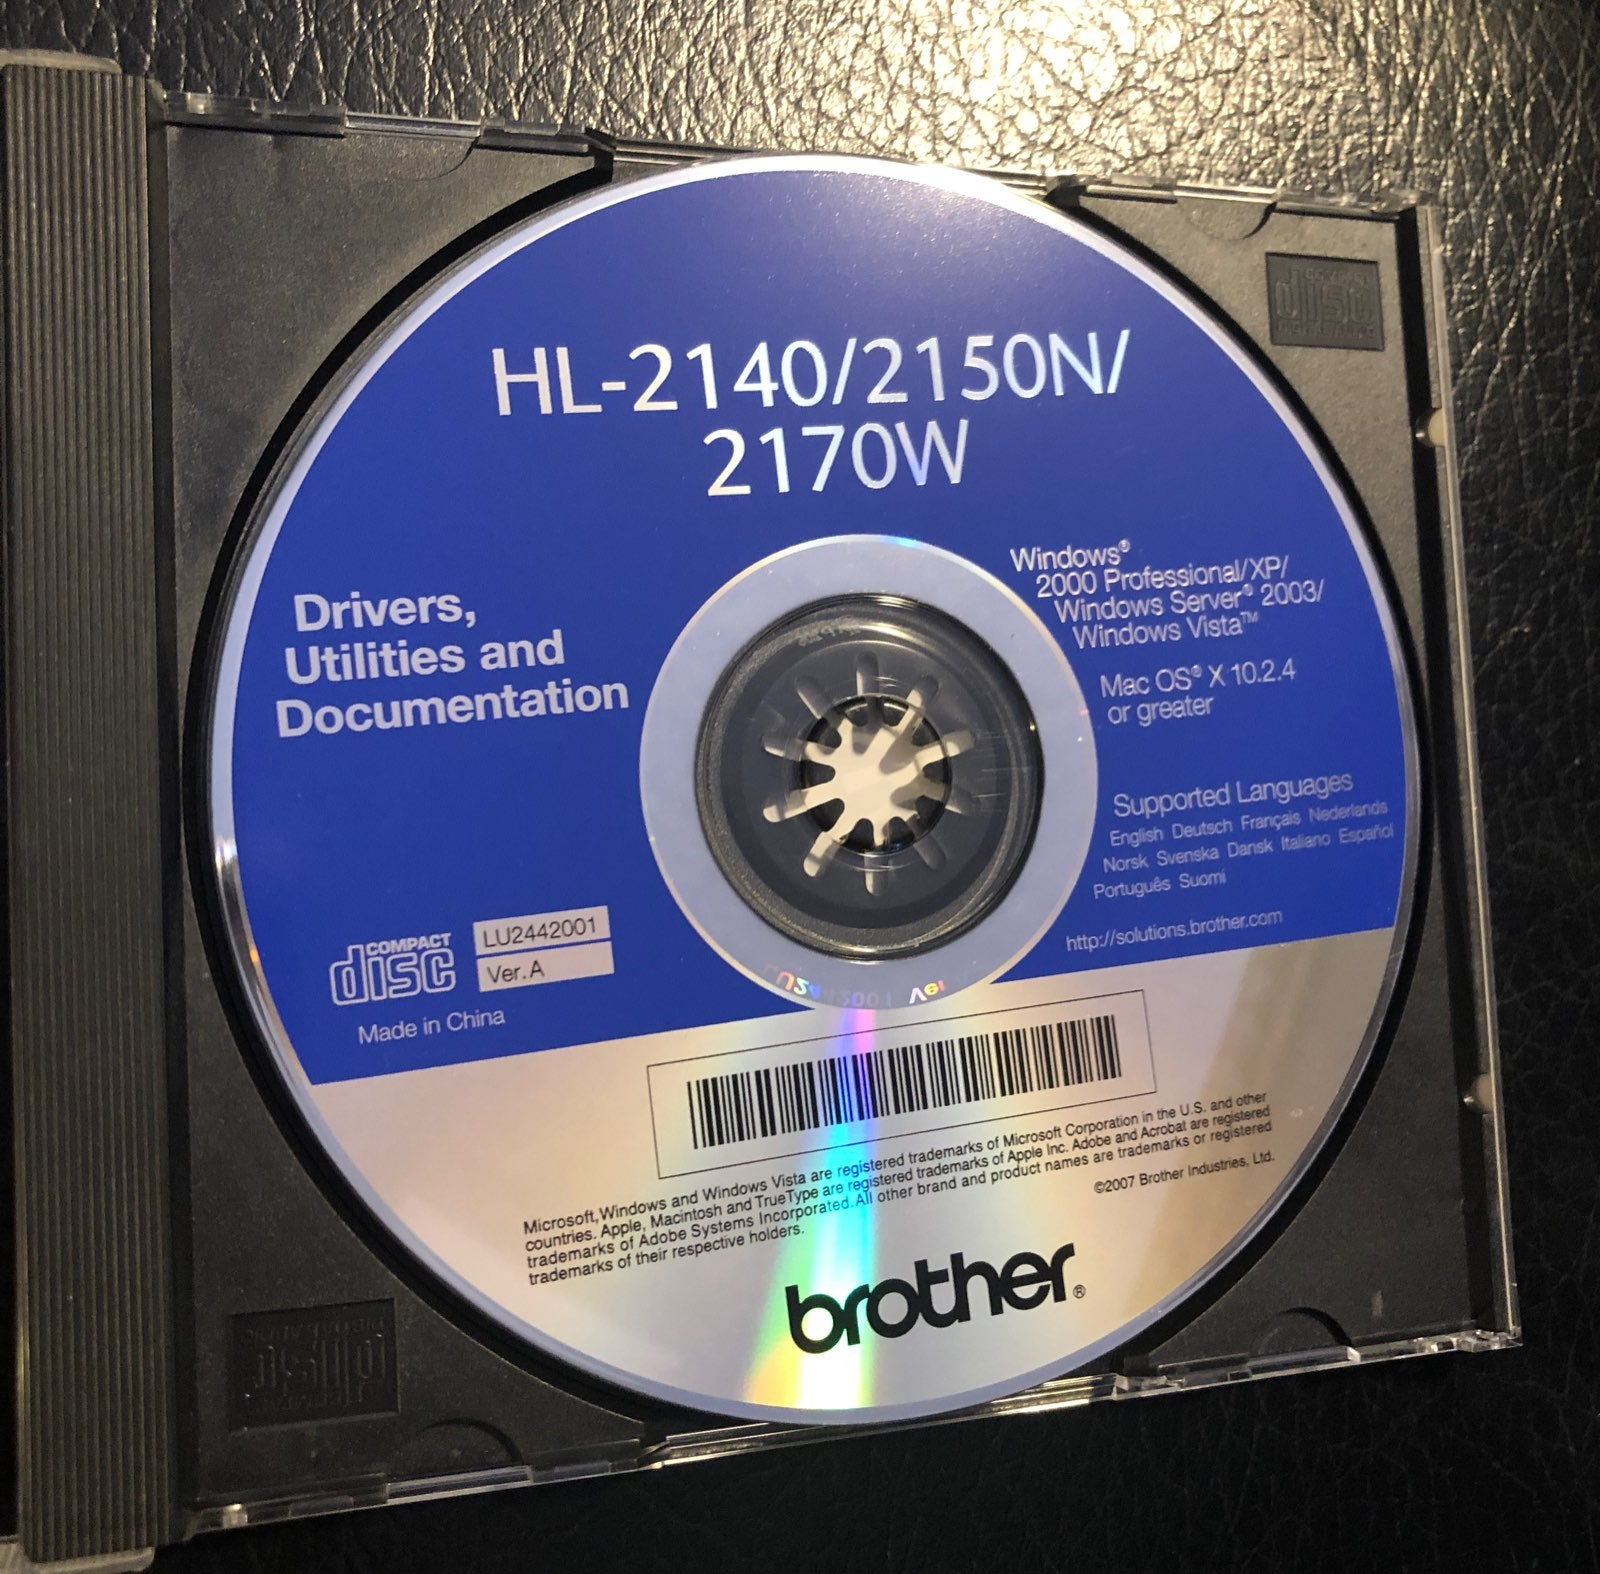 Brothers CD Disk Driver Utilities XP Win